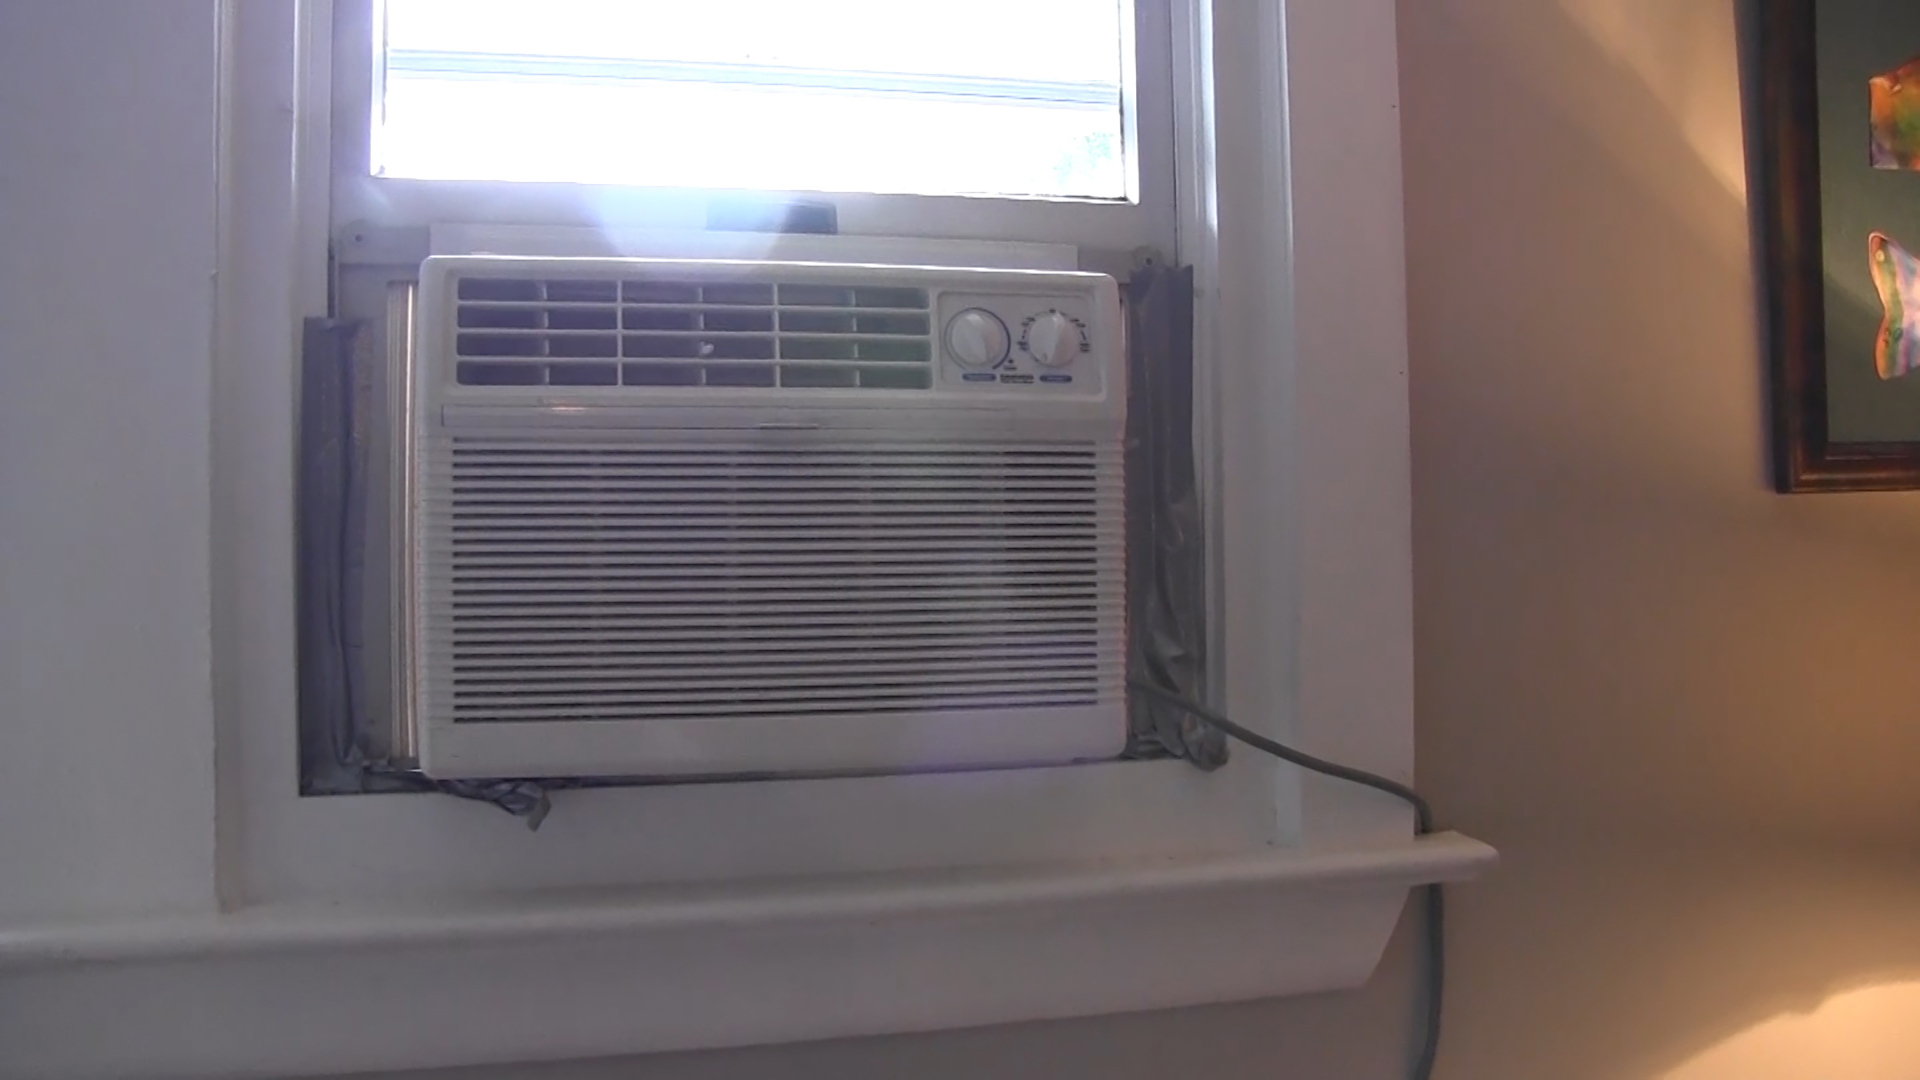 Which brands make portable windowless air conditioner models?